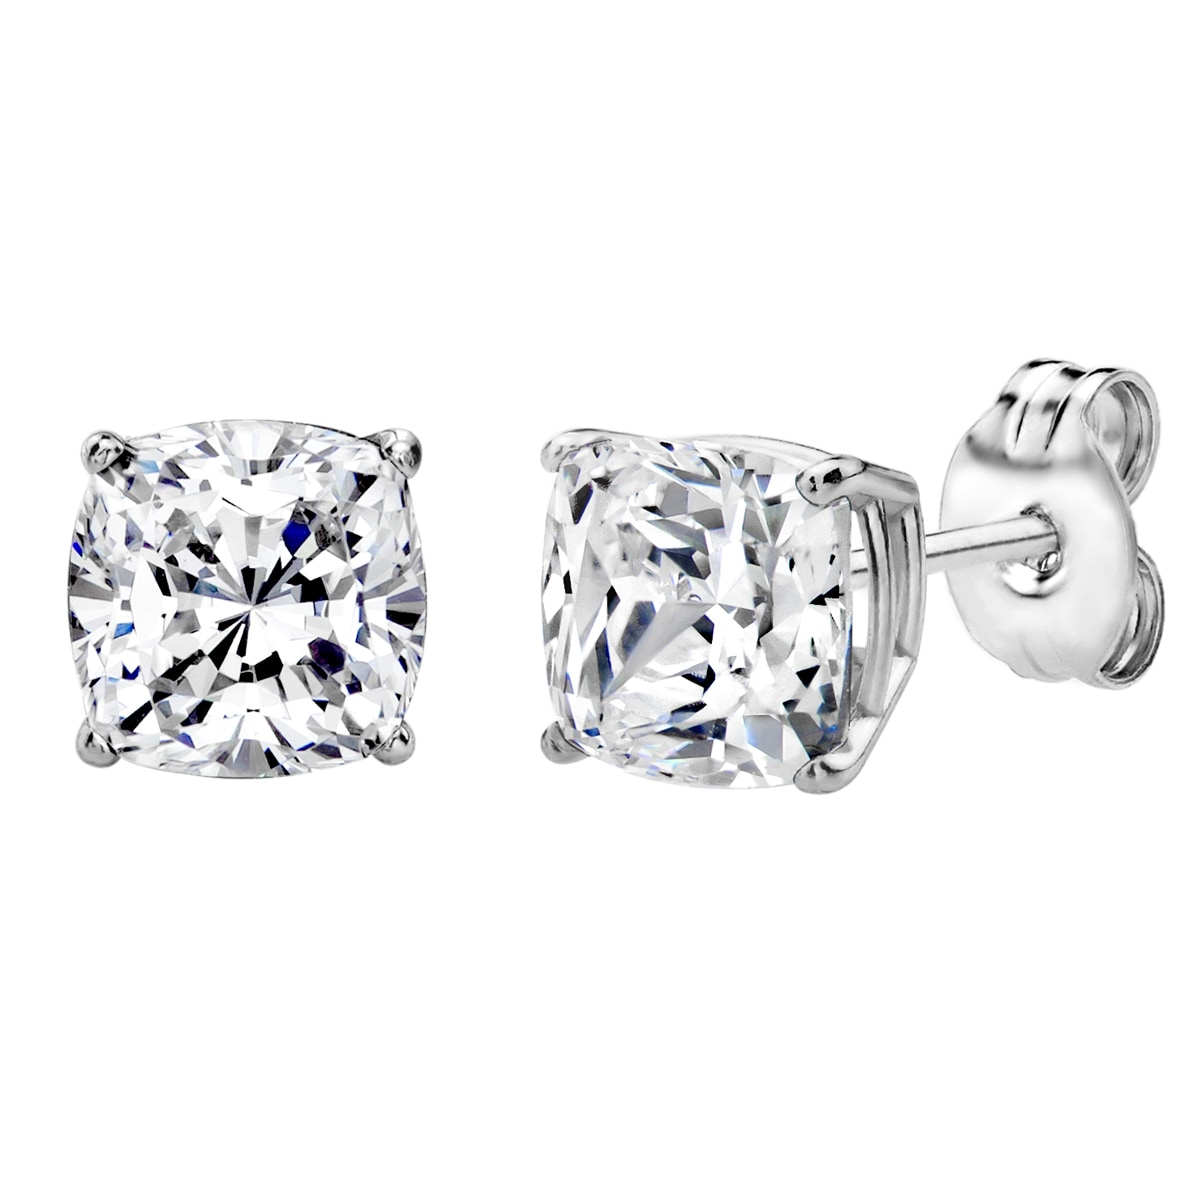 8561fcd62 Sterling Silver 2 CTtw 6mm Cushion-cut Stud Earrings Made with Swarovski  Zirconia